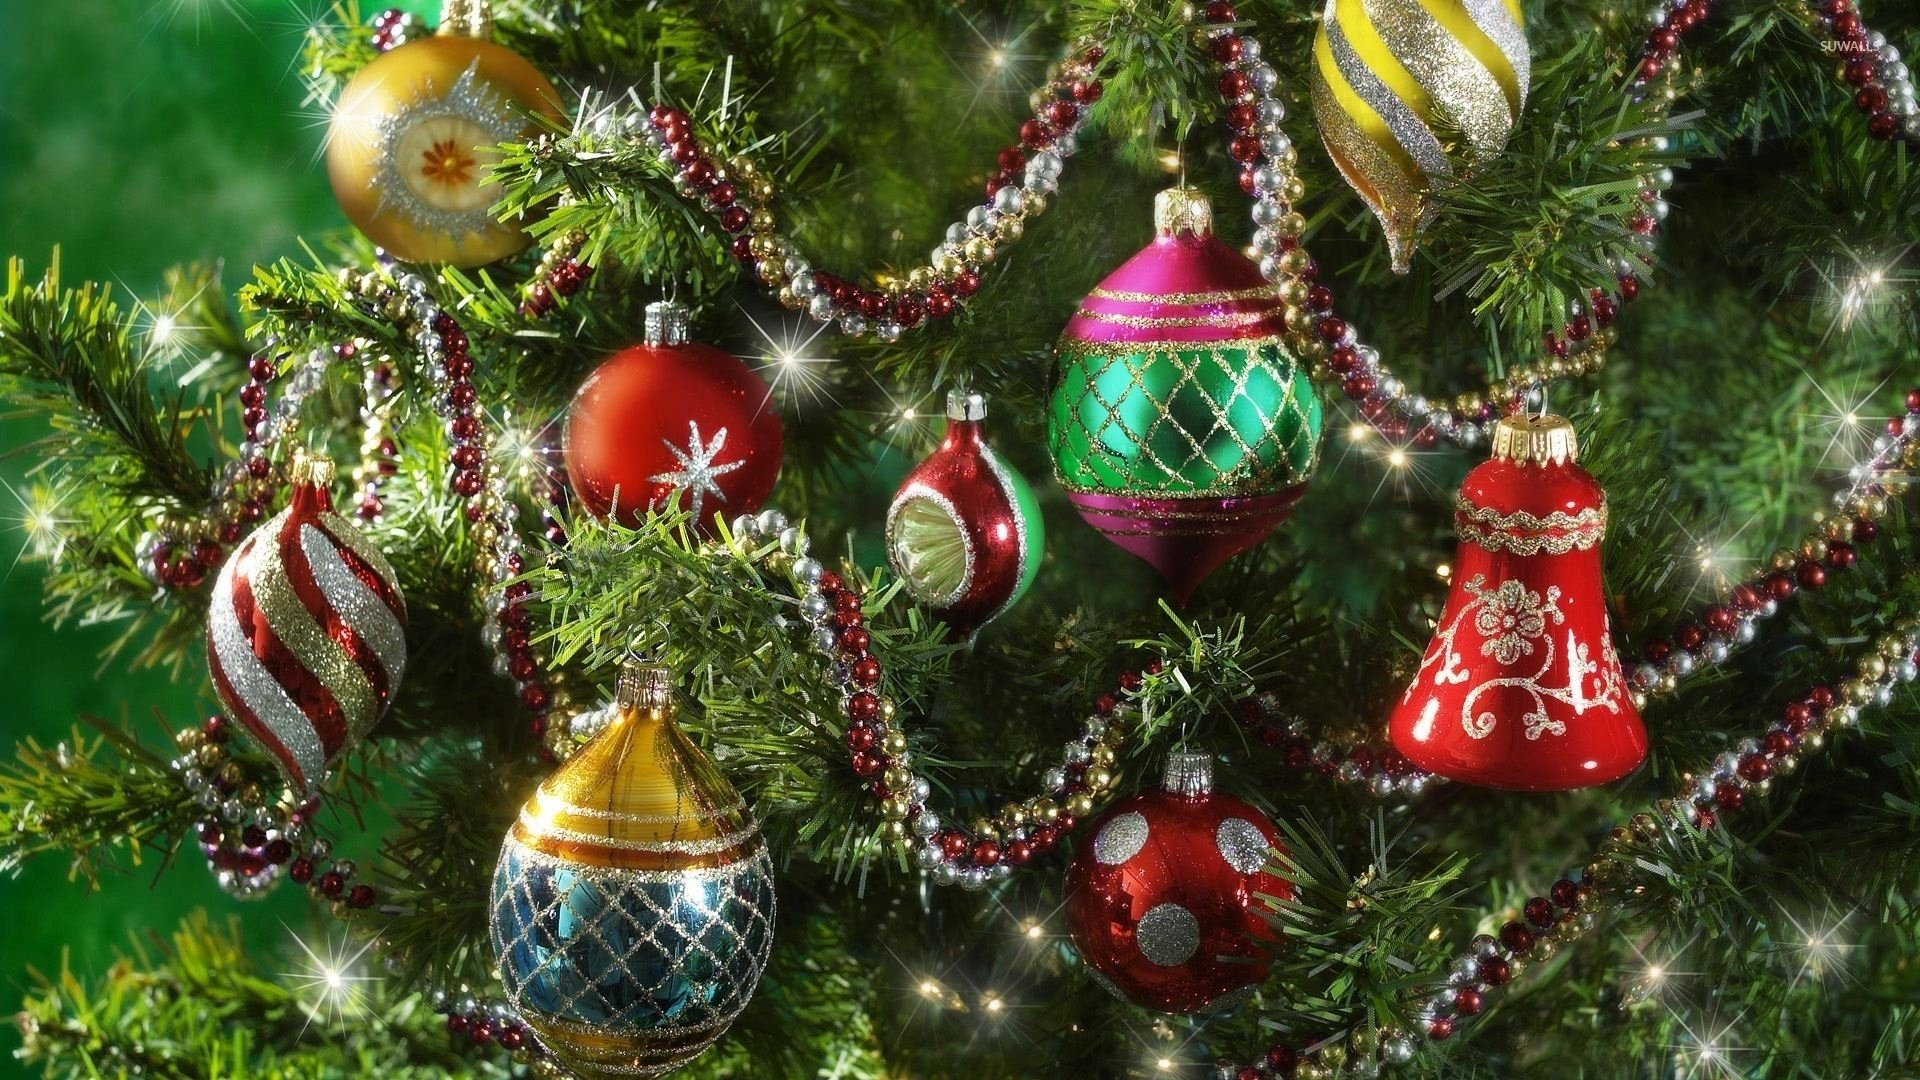 Colorful Christmas ornaments Awesome Christmas ornaments On Tree Full Hd Wallpaper and Of Perfect 48 Pictures Colorful Christmas ornaments